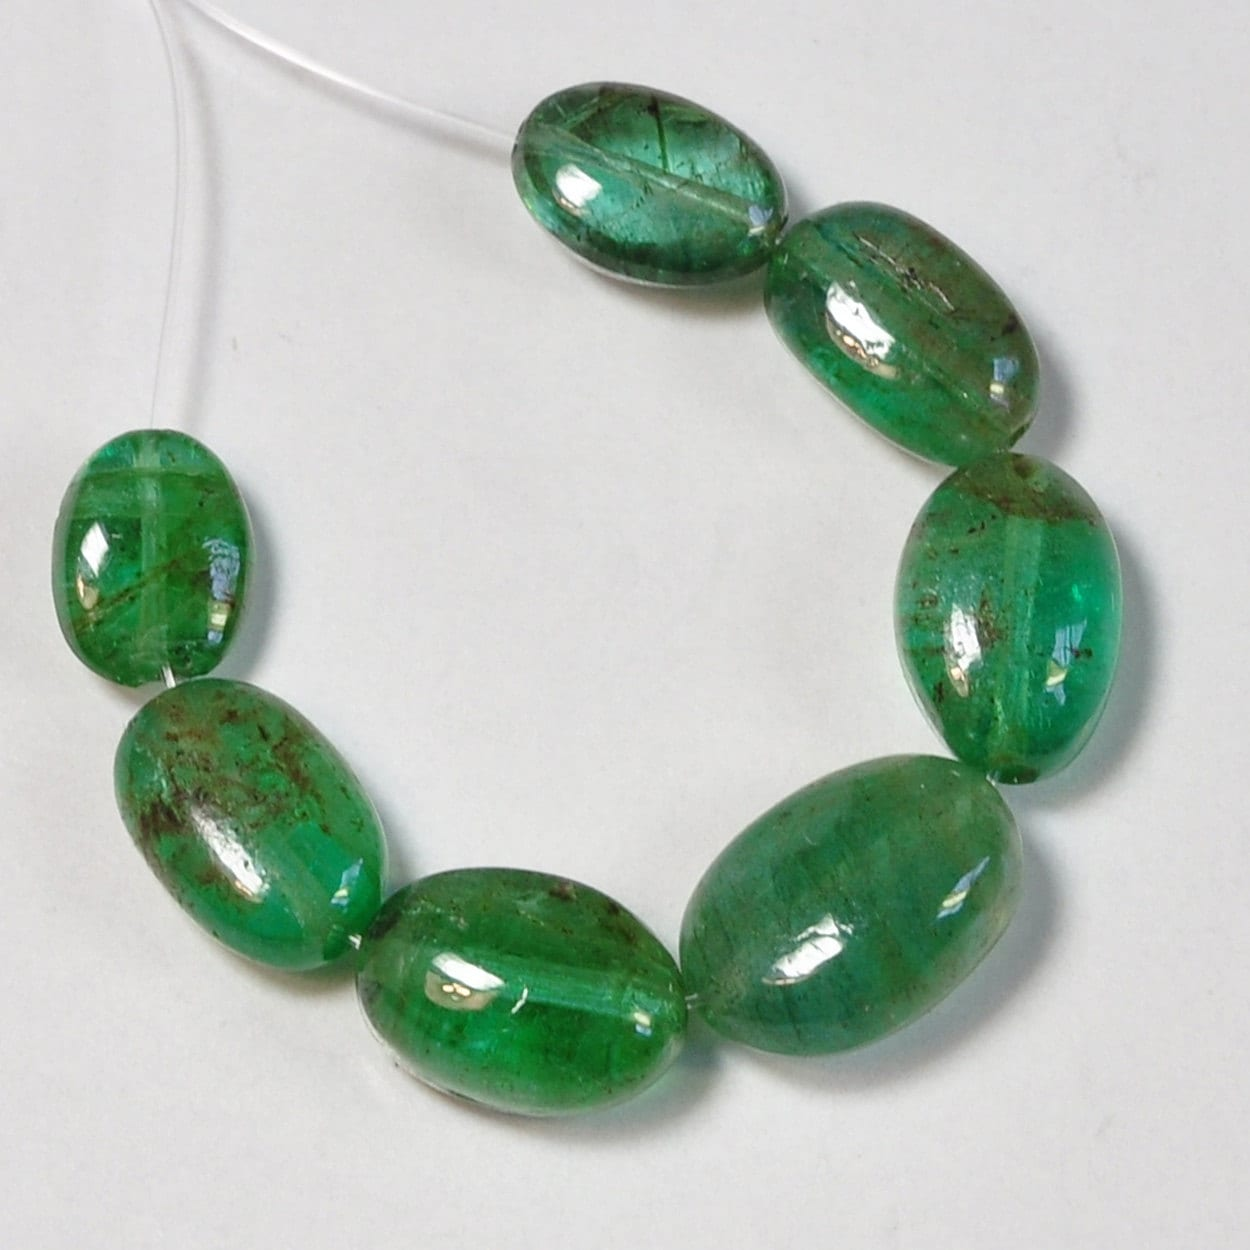 Emerald Bead Beads: Natural Organic Zambian EMERALD Tumbled Smooth Nuggets Beads